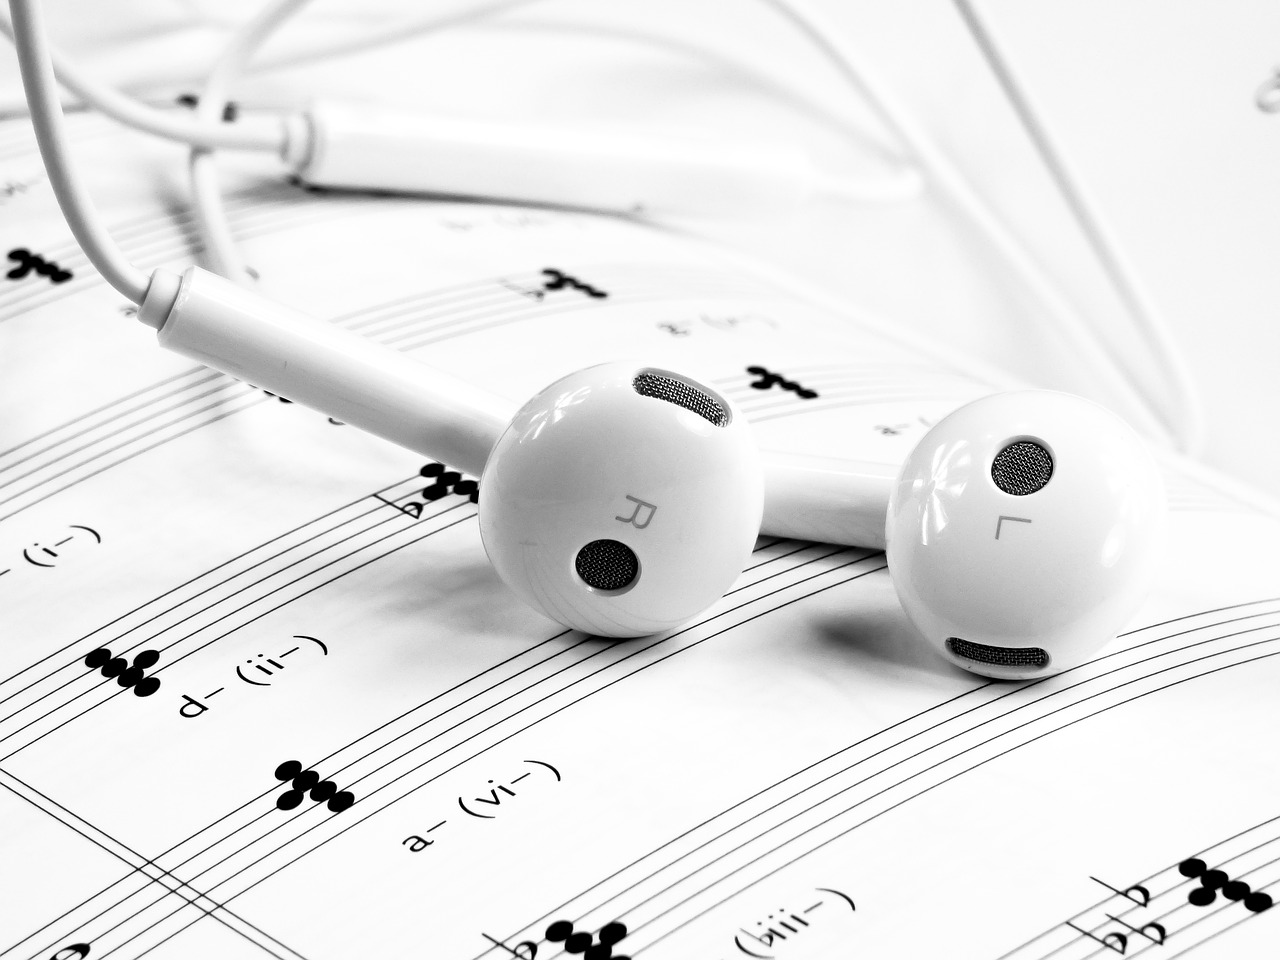 Best music streaming services to try out